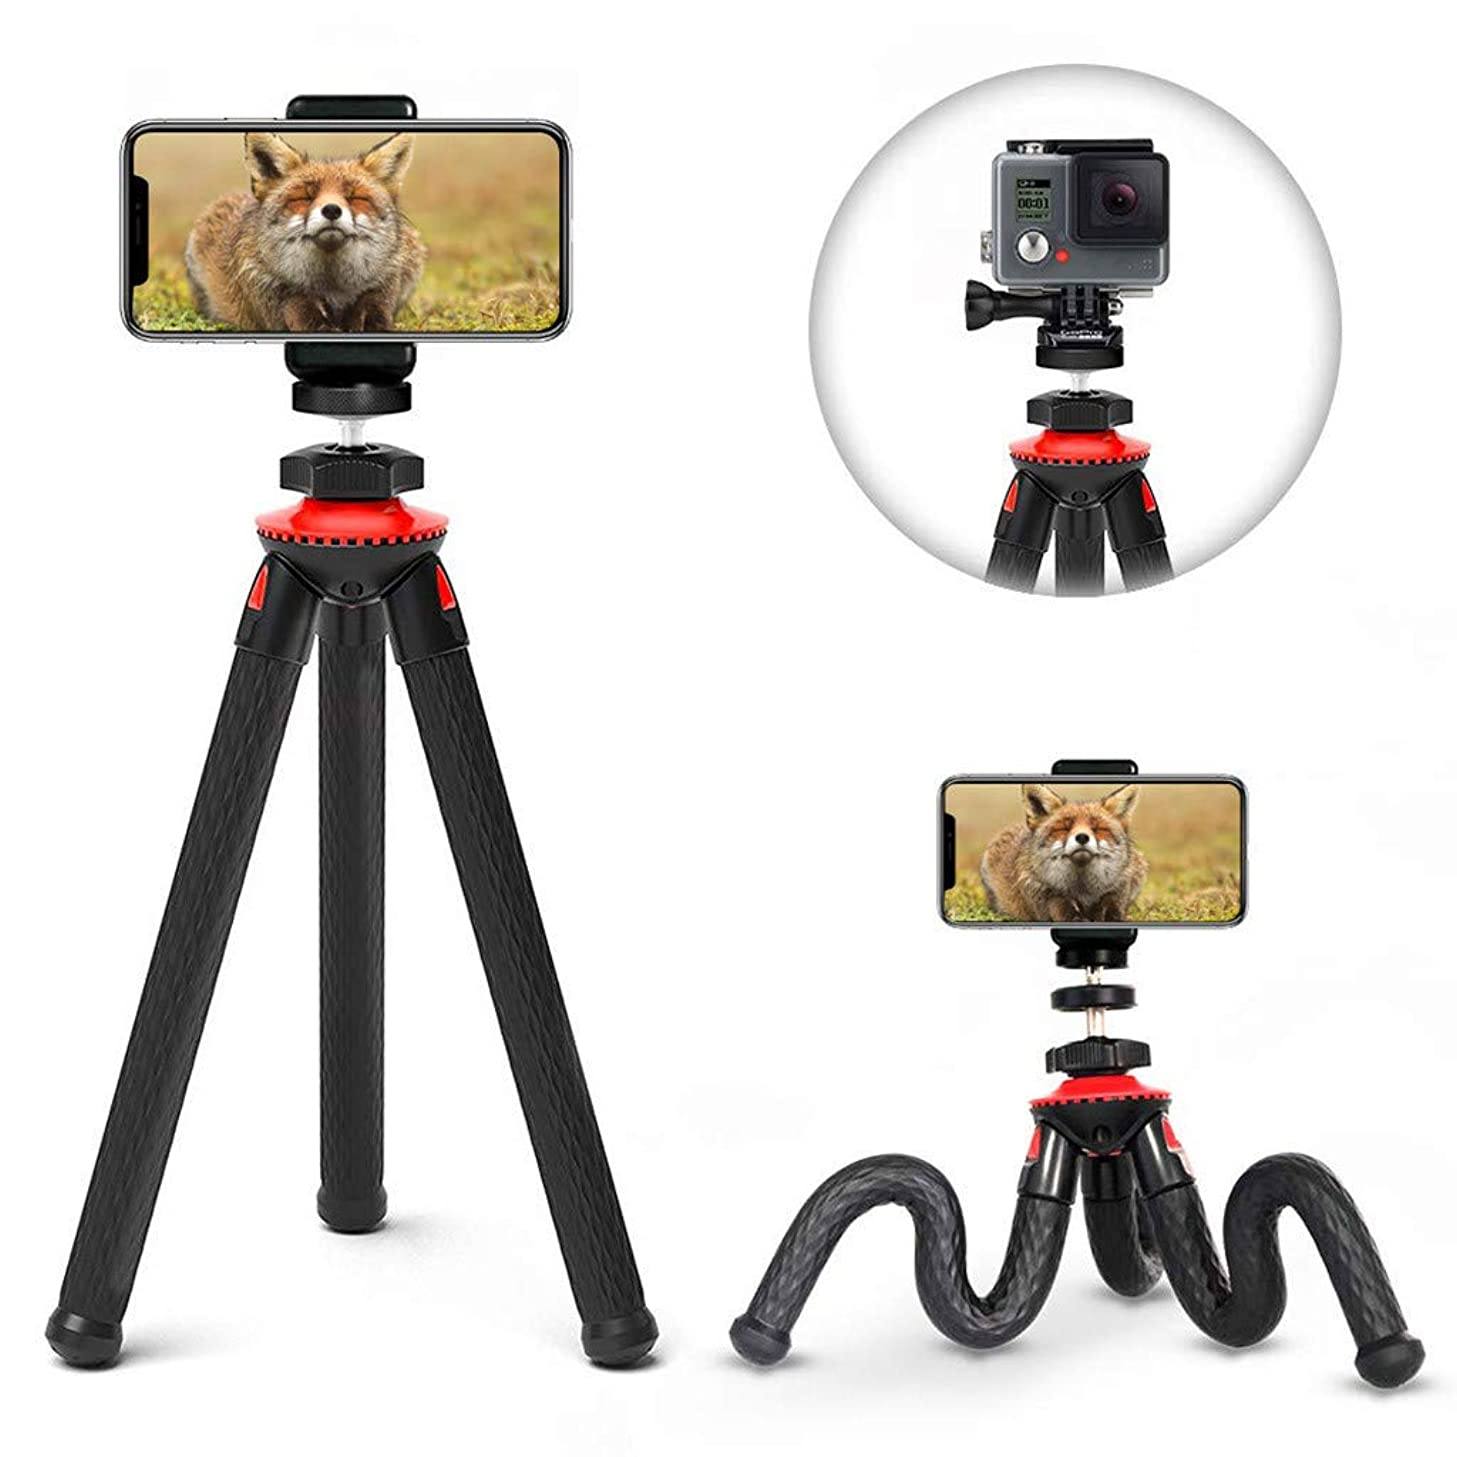 Solovley Camera Stand, Flexible Adjustable Tripod Camera with Adapter Telescope Phone Mount Adapter Remote Control for Canon